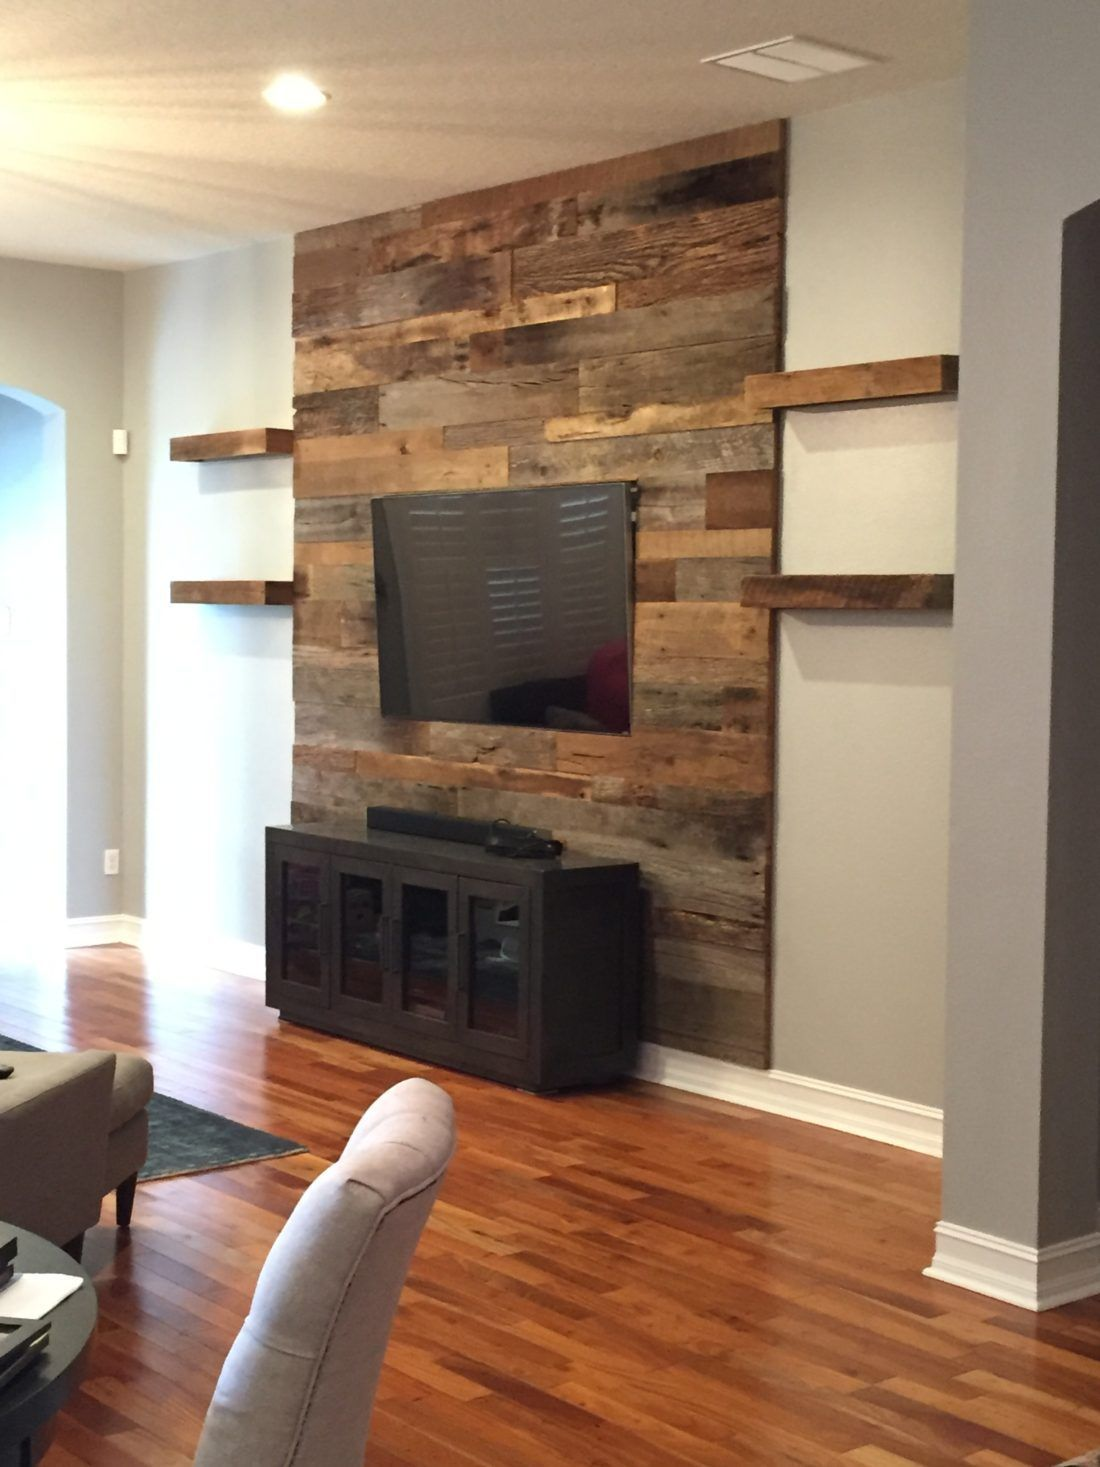 Best Wood Accent Wall Ideas to Make Any Spaces Warmth # ...